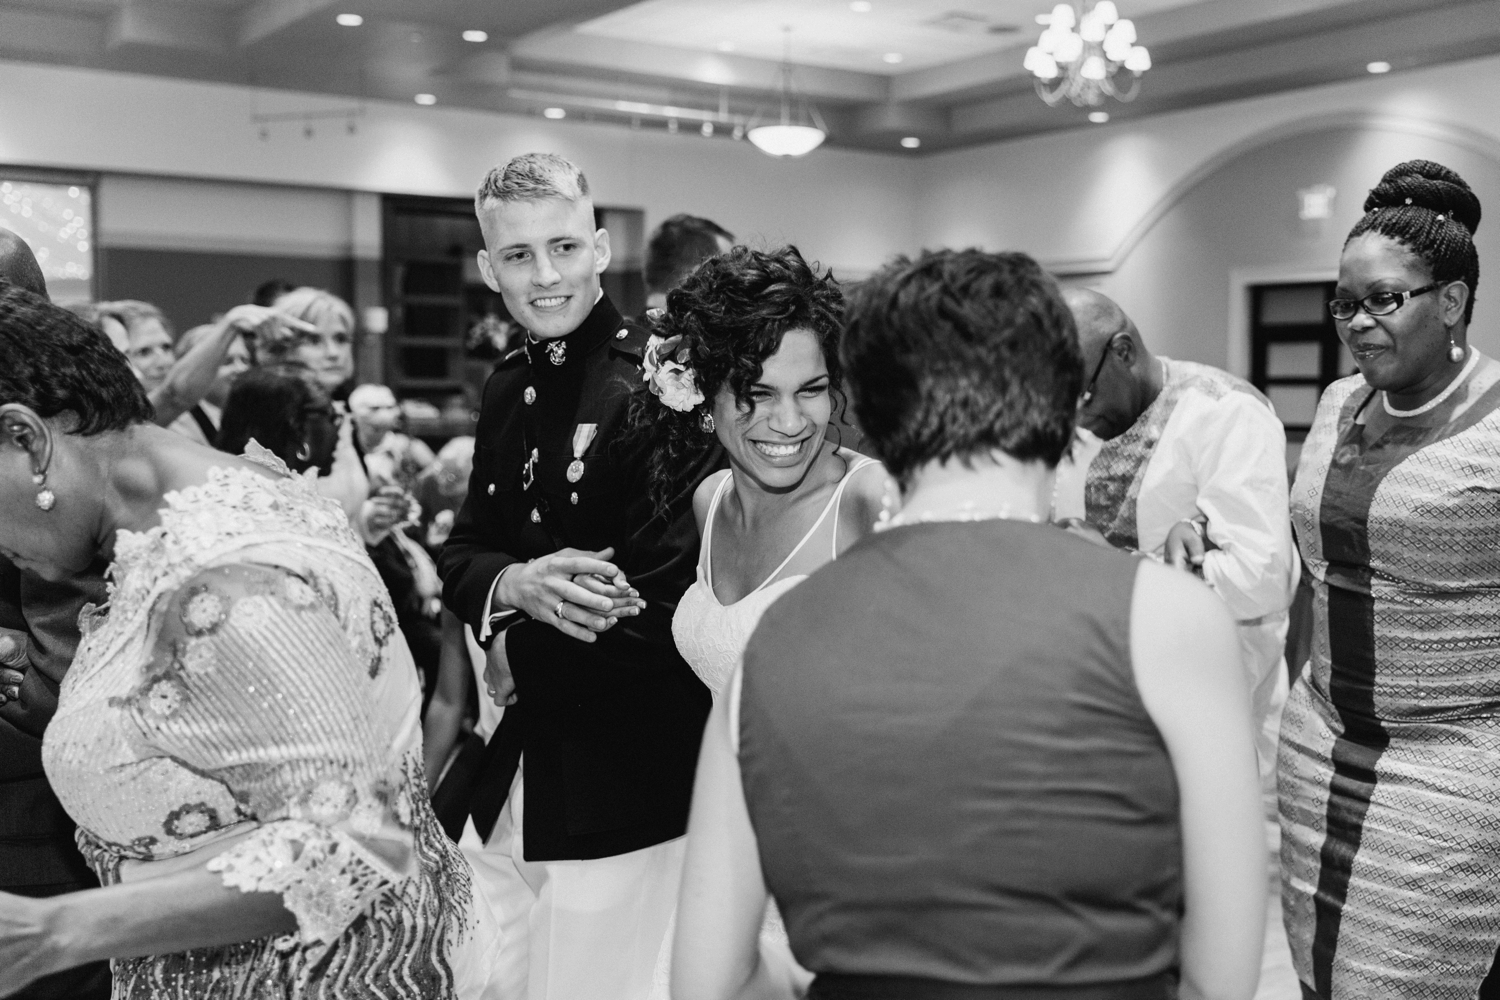 Wedding-at-The-Savannah-Center-West-Chester-Ohio-Photography-Chloe-Luka-Photography_7570.jpg